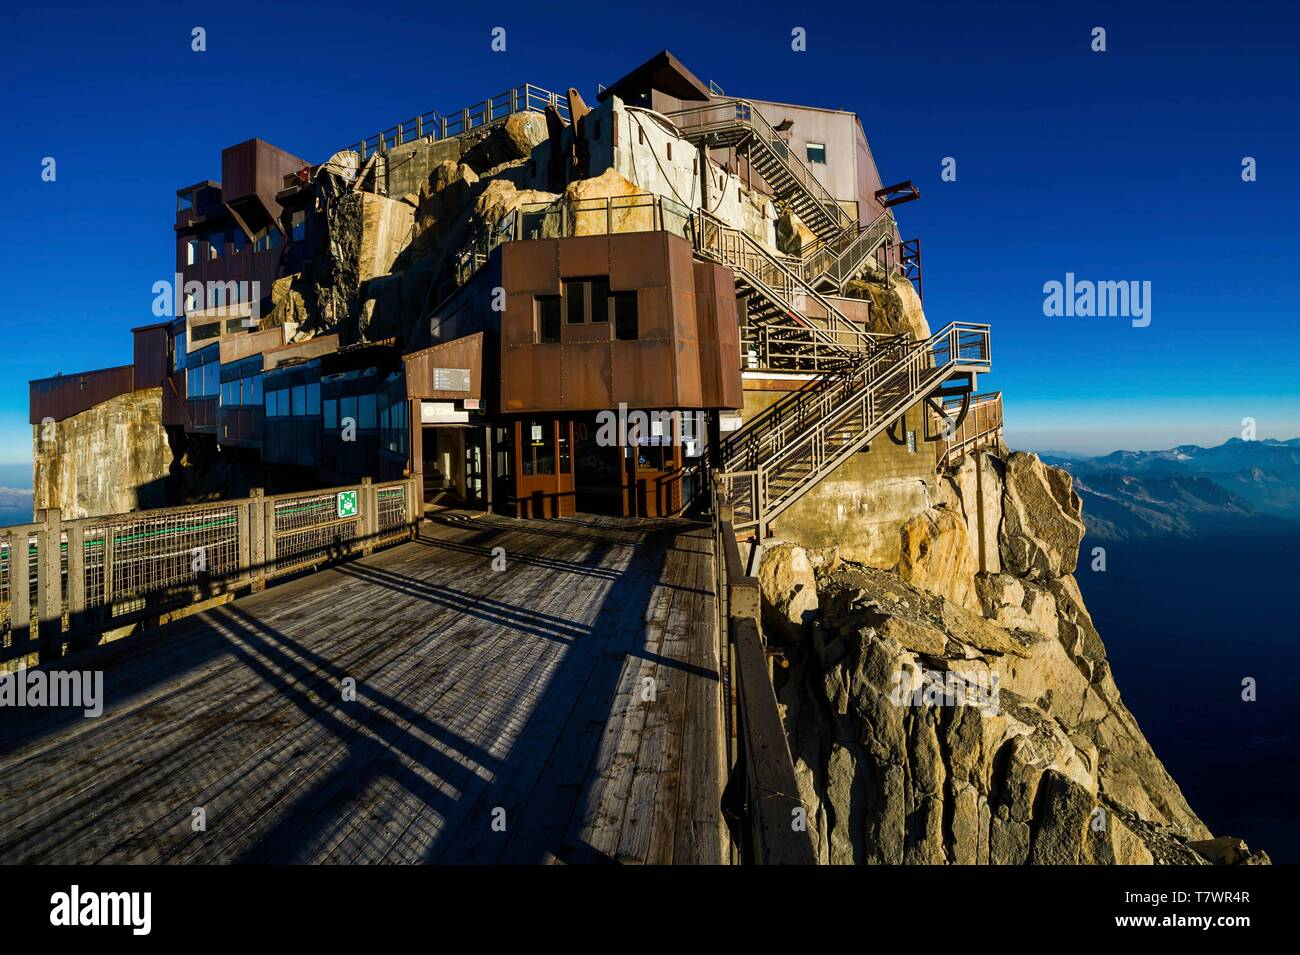 France, Haute-Savoie, Chamonix-Mont-Blanc, summit station of the Aiguille du Midi cable car - Stock Image